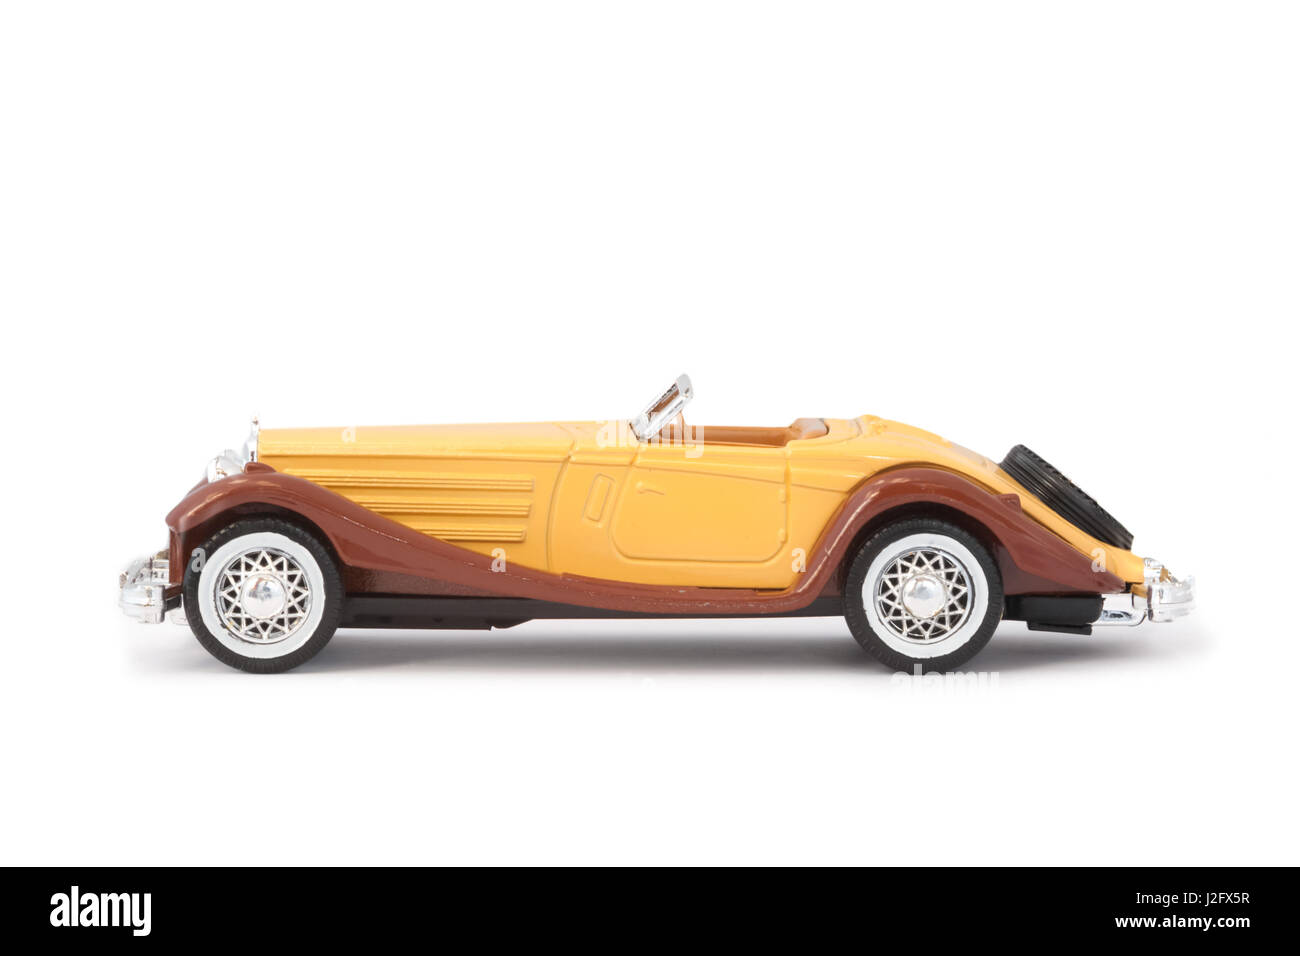 old miniature model sports car on white - Stock Image